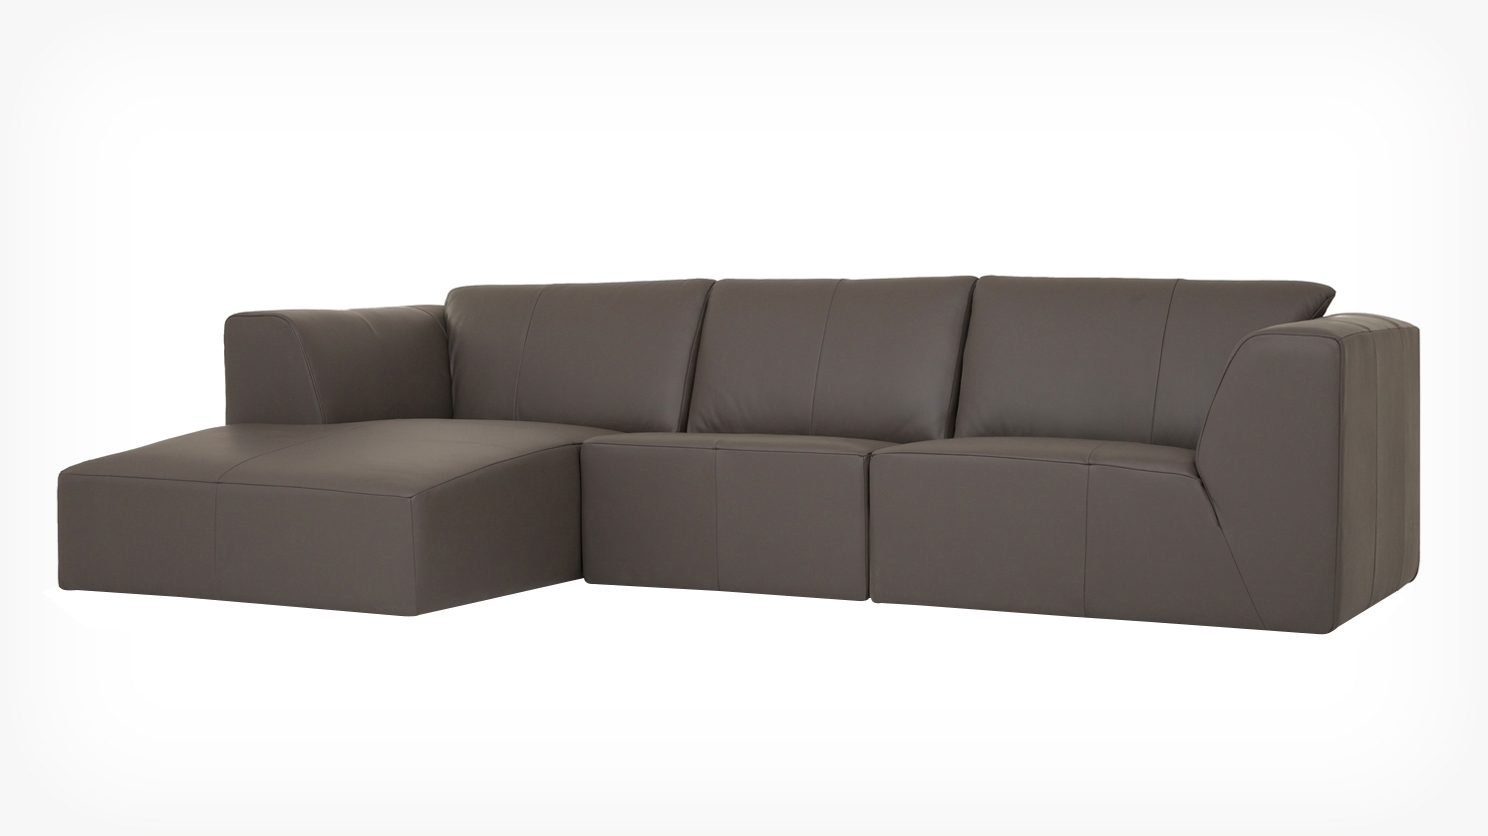 Morten 3 Piece Sectional Sofa With Chaise – Leather (Gallery 4 of 20)